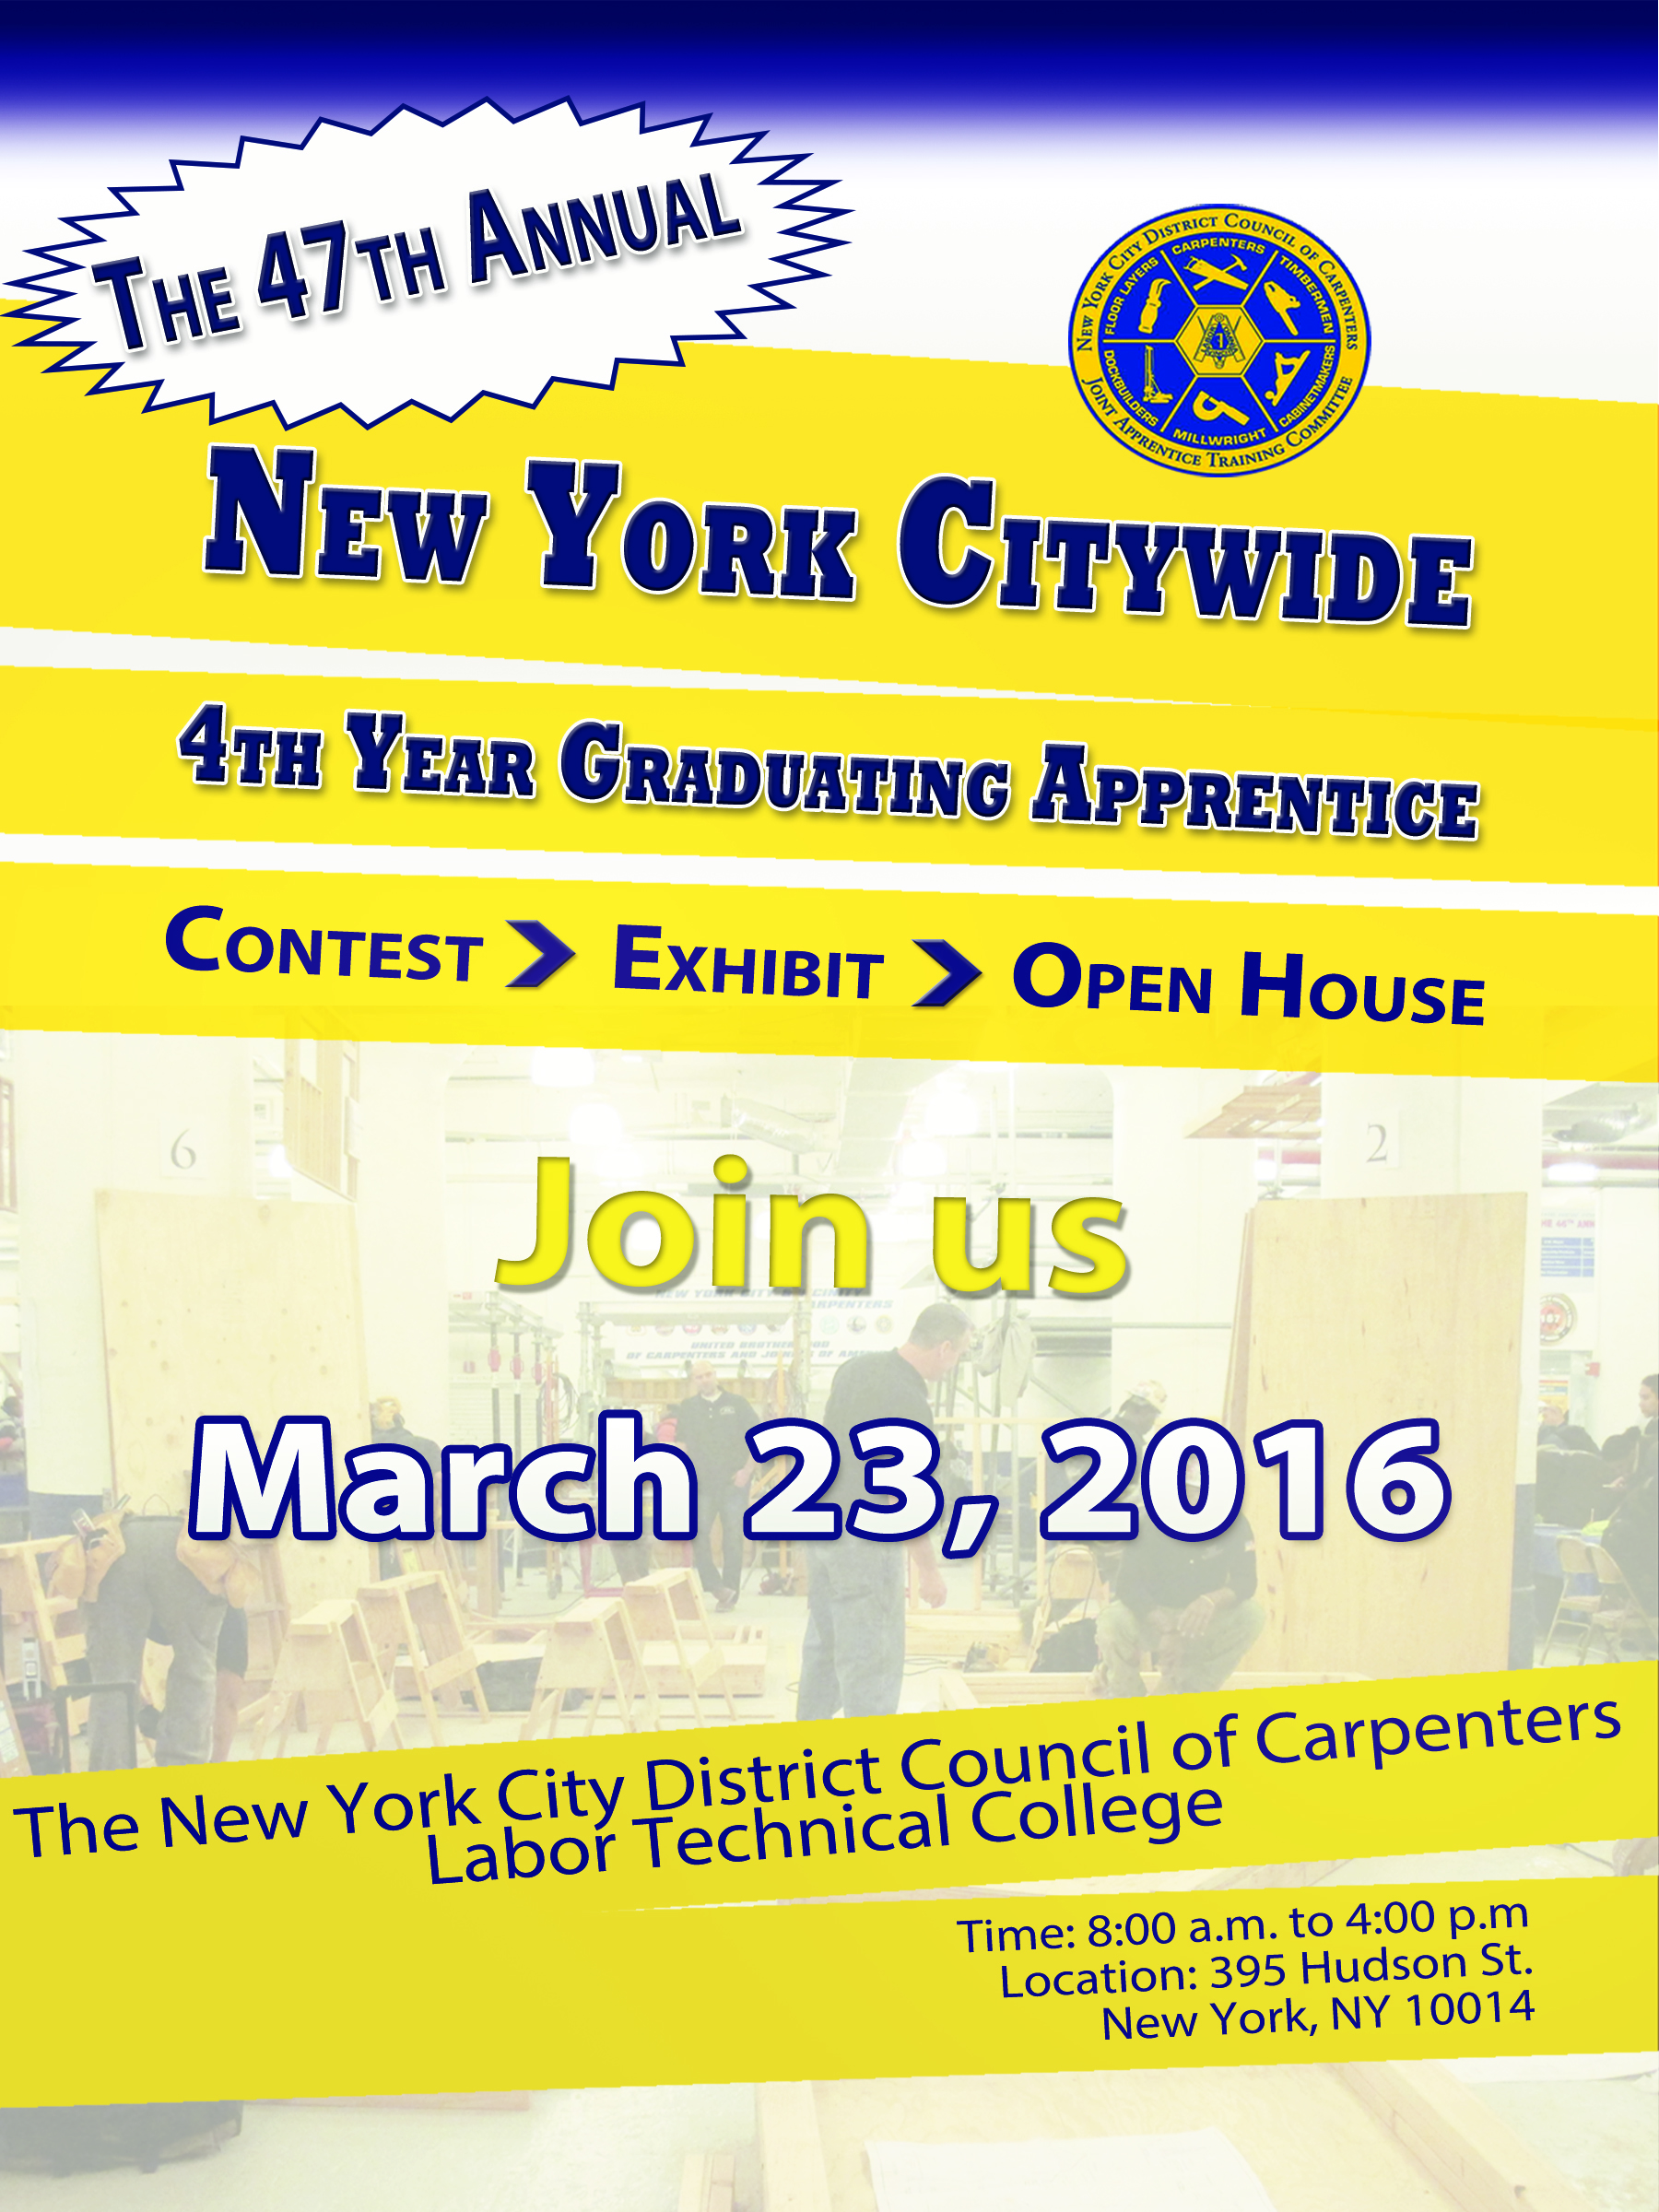 NYCDCC Labor Technical College 47th Annual Graduating